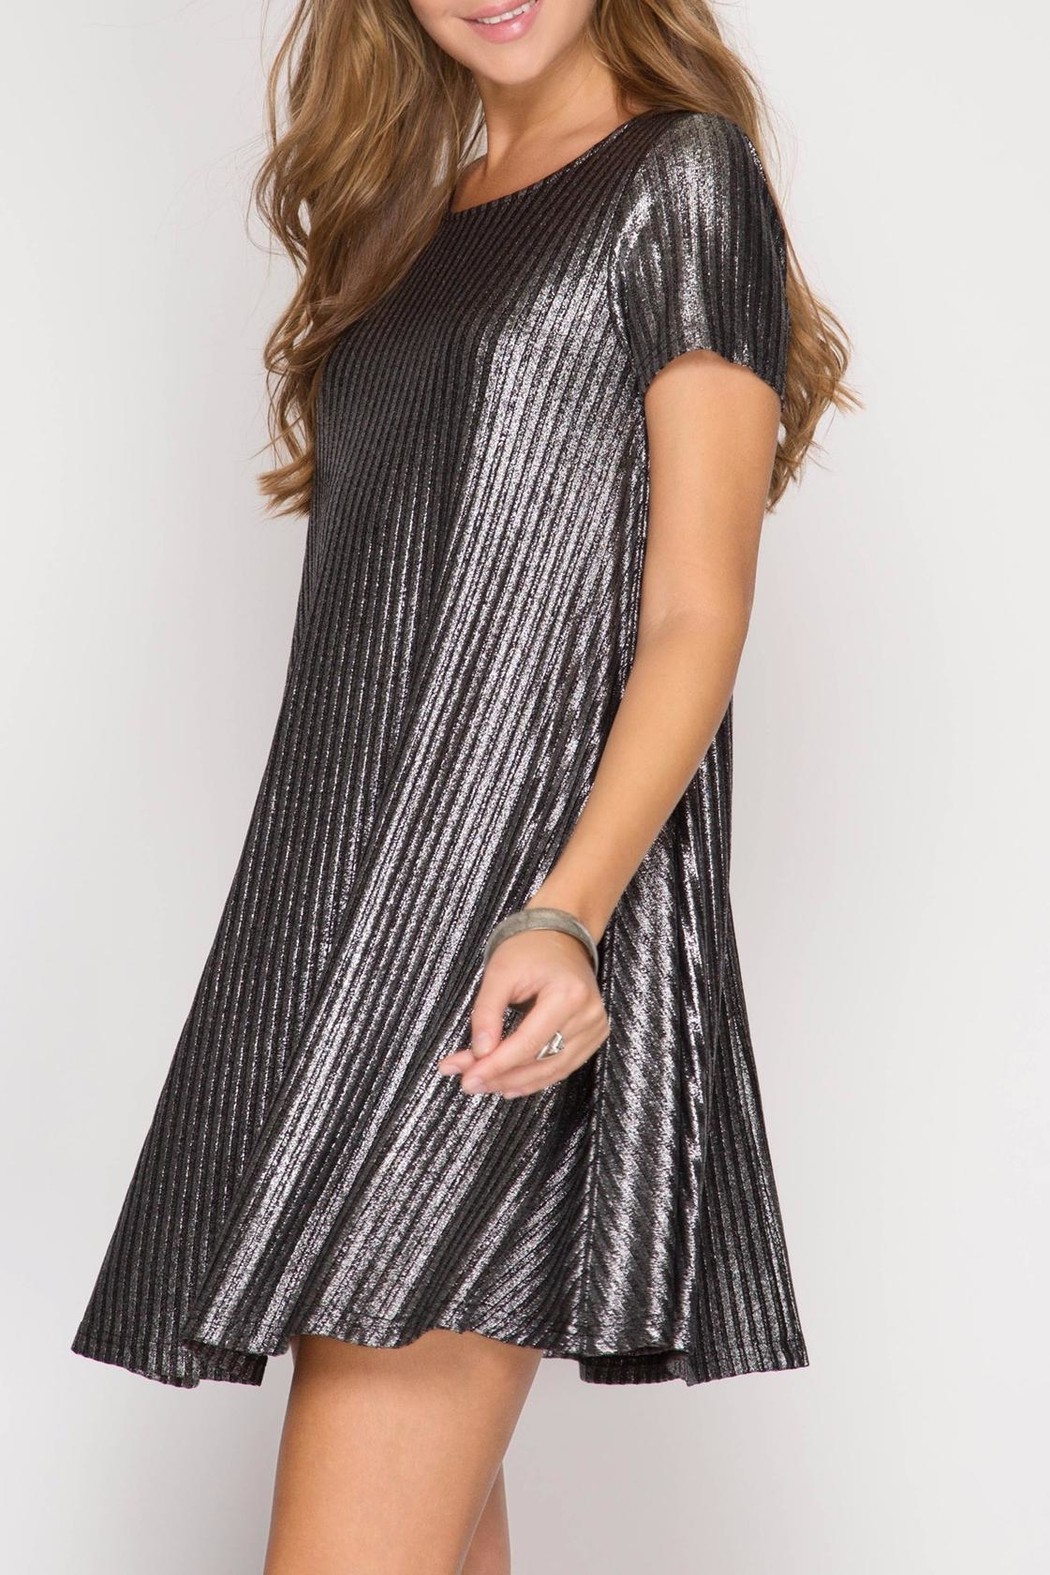 She + Sky Silver Metallic Dress - Front Full Image